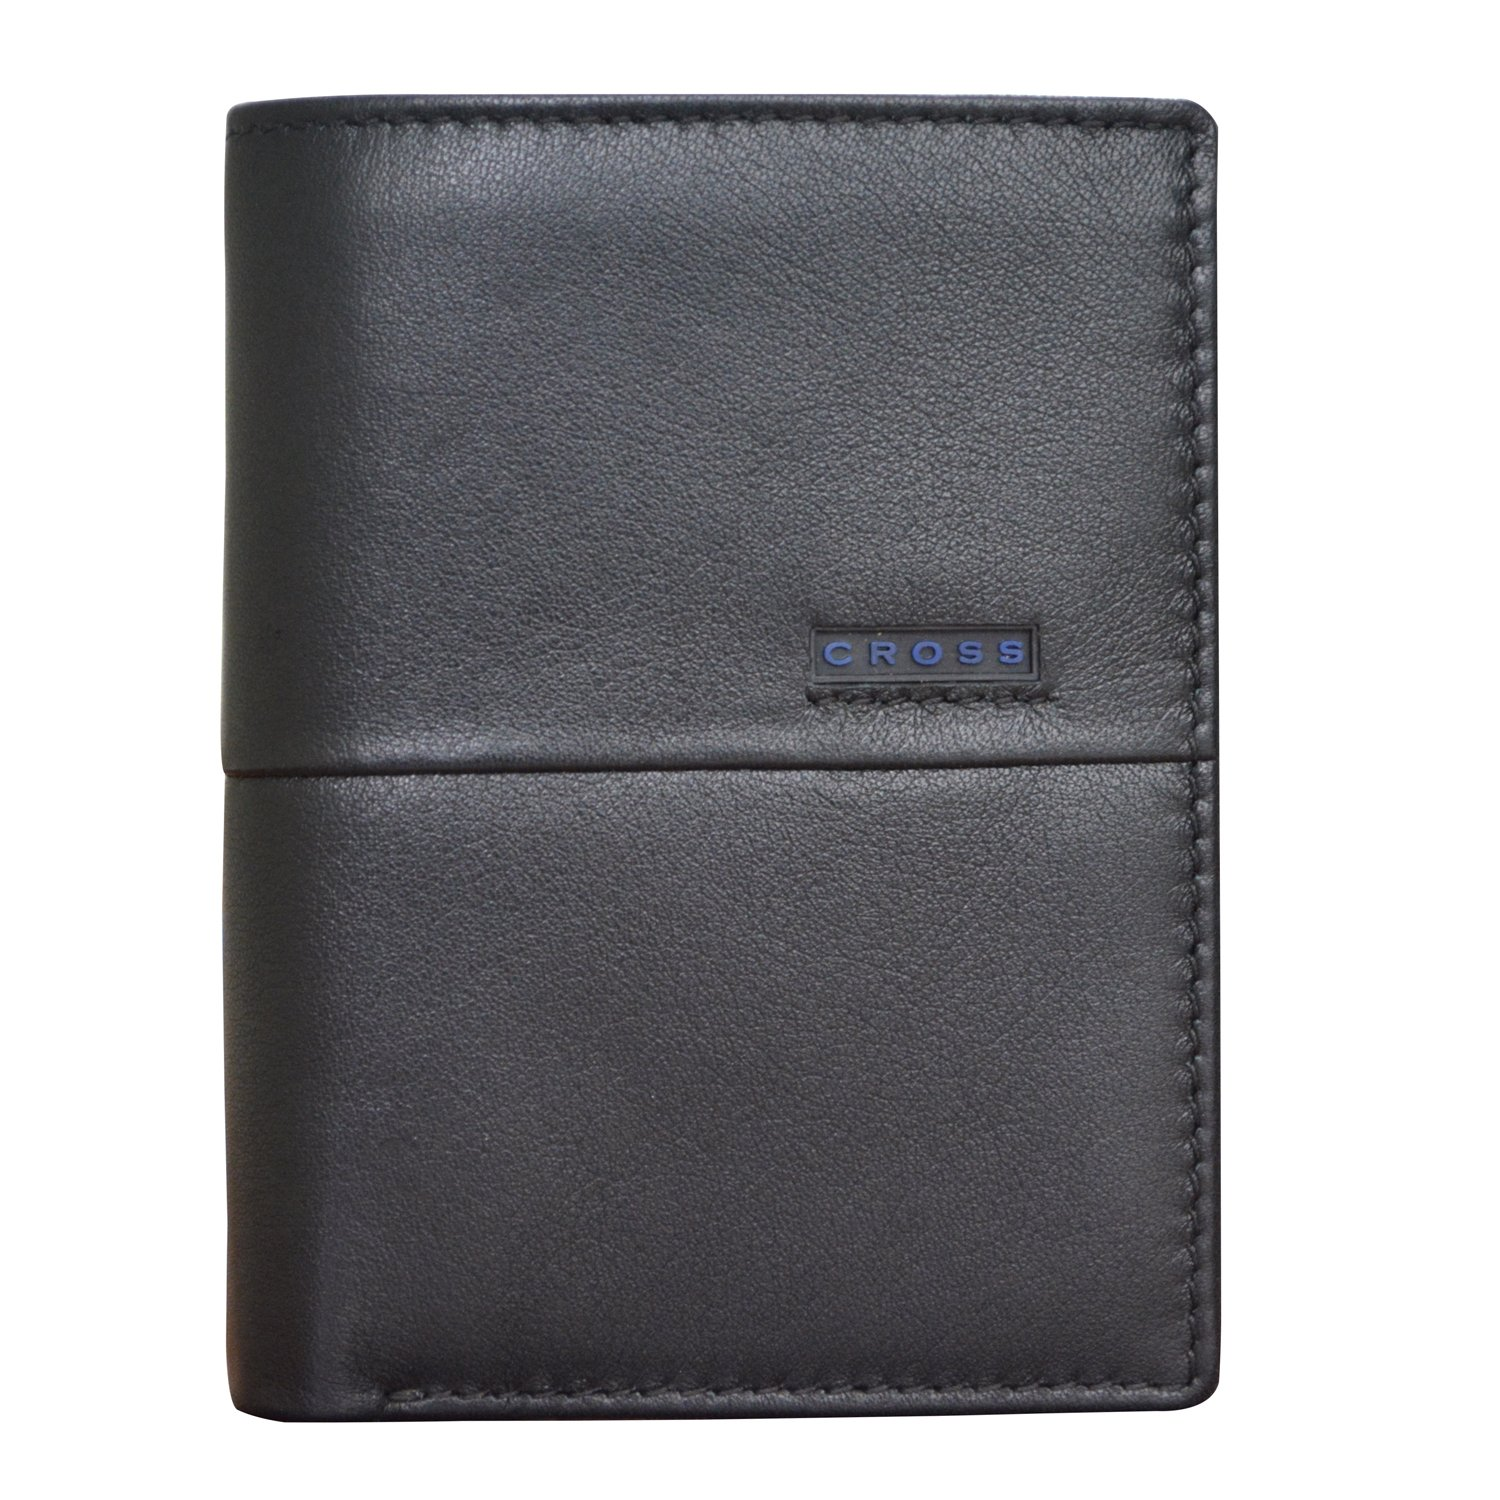 Cross Men's Genuine Leather Note Case With Id Window - Neuva CR - Black/Middle Blue (AC048216) Torero Corporation Pvt Ltd